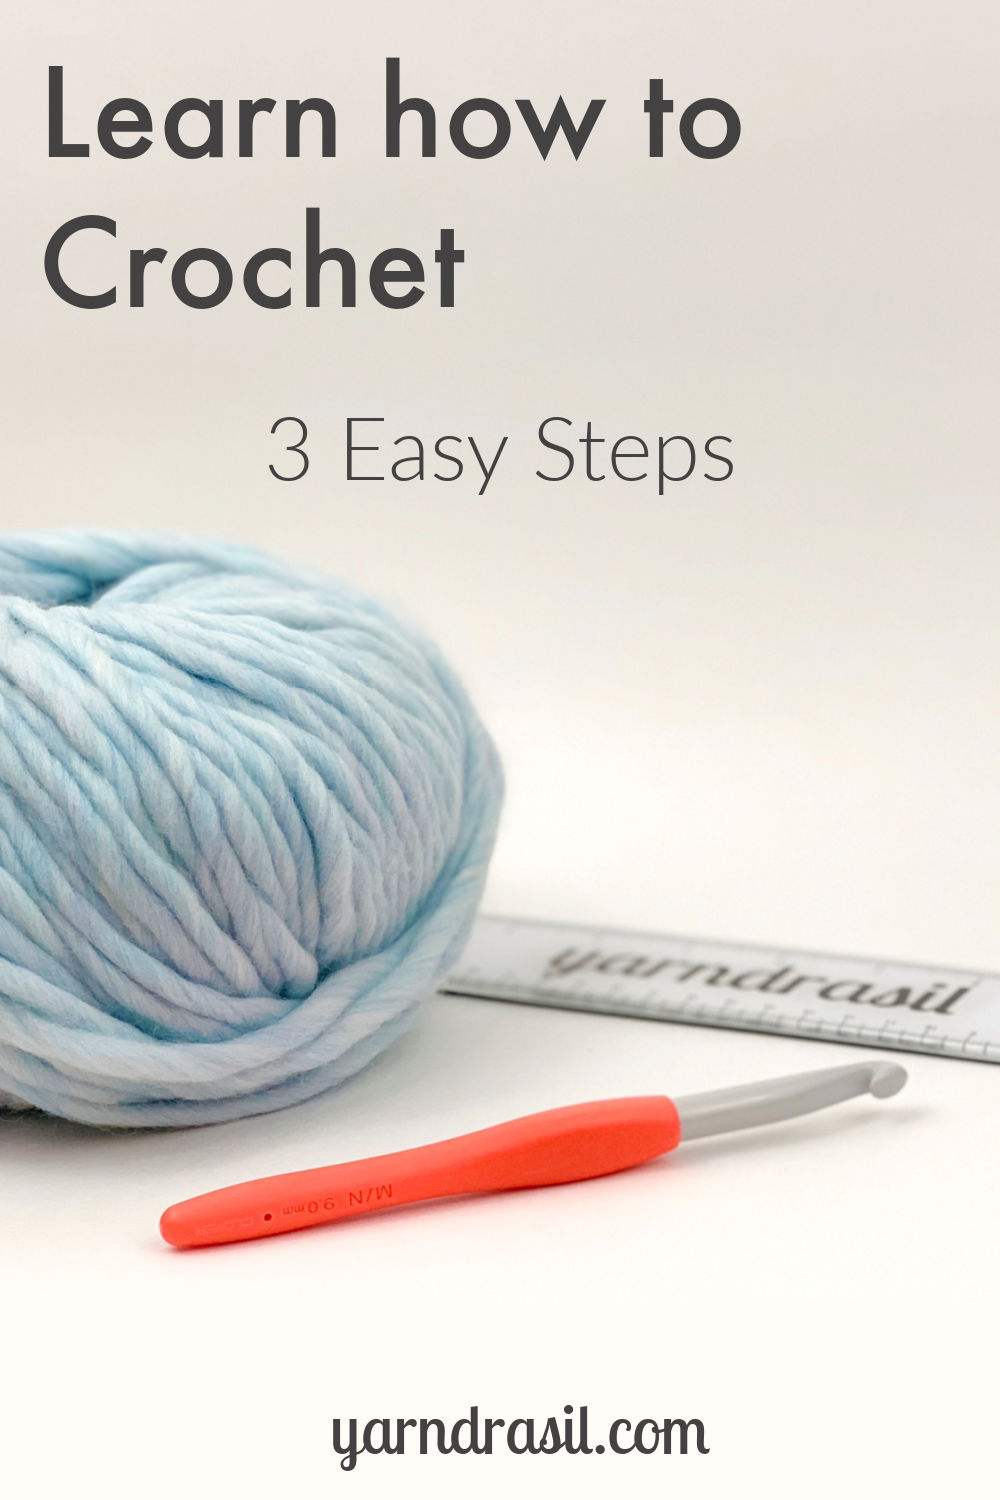 How to Crochet in 3 easy steps, showing a yarn and hook